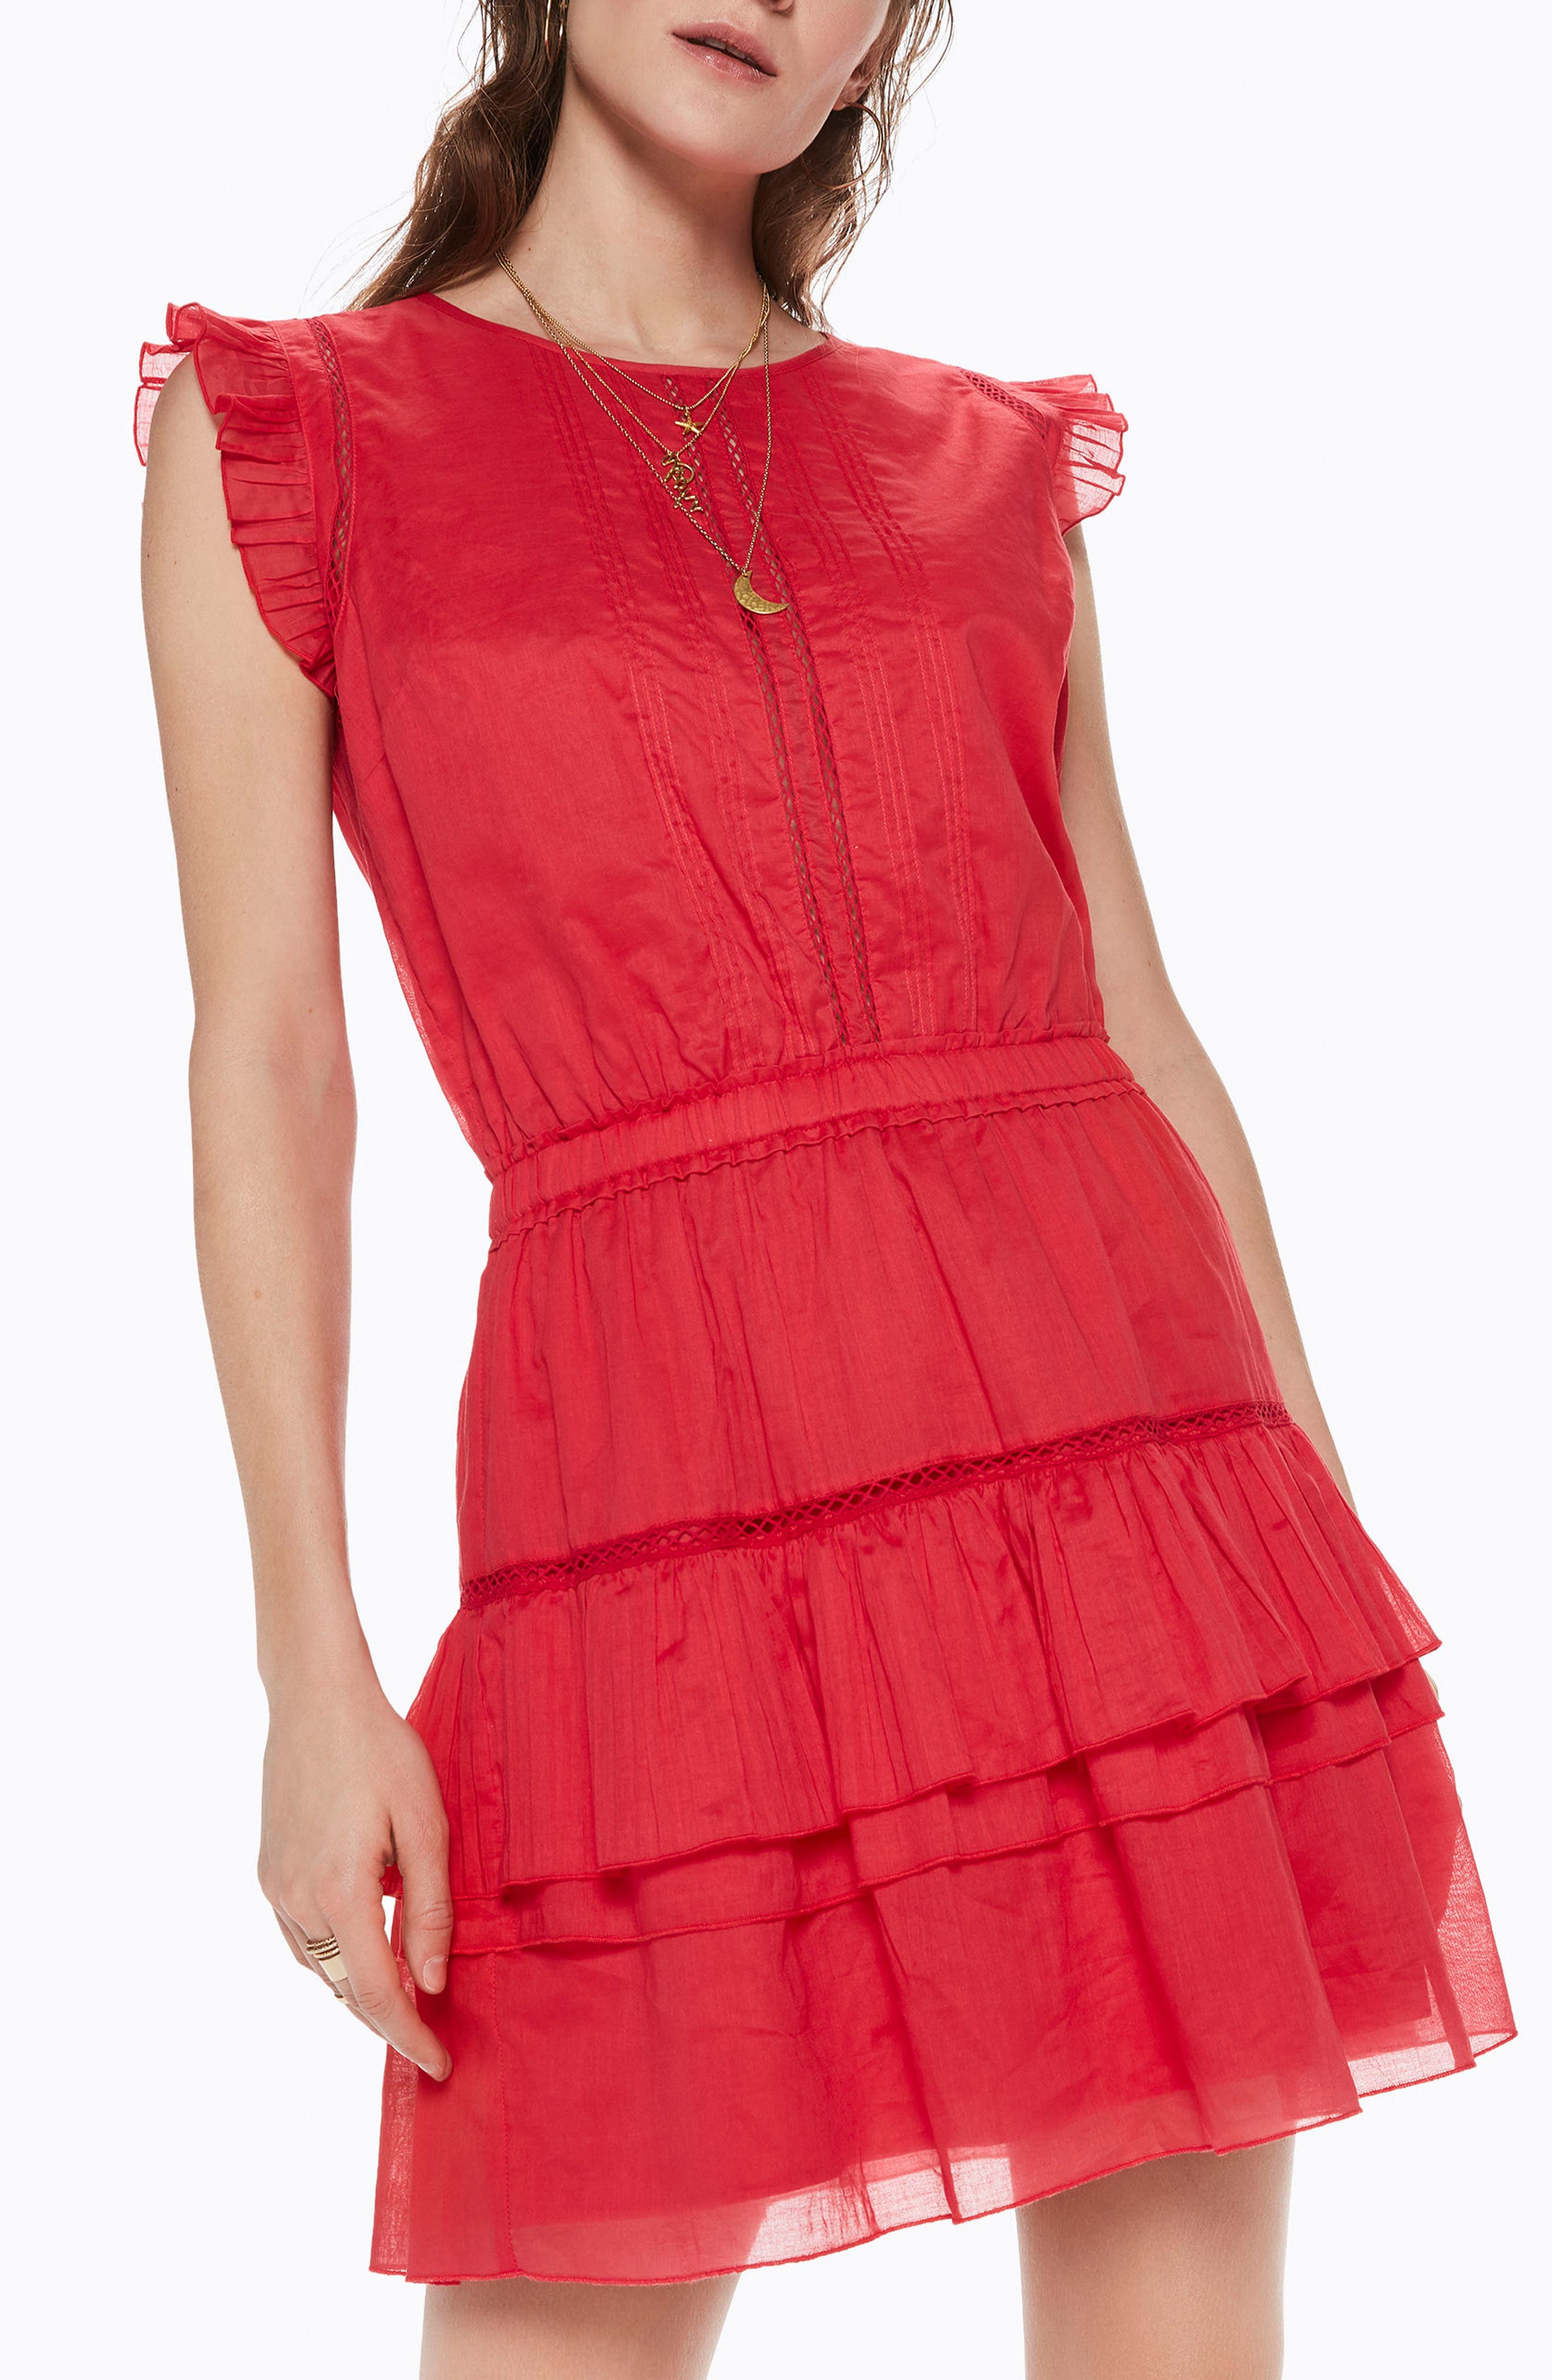 SCOTCH & SODA,                             Tiered Sleeveless Dress,                             Main thumbnail 1, color,                             600